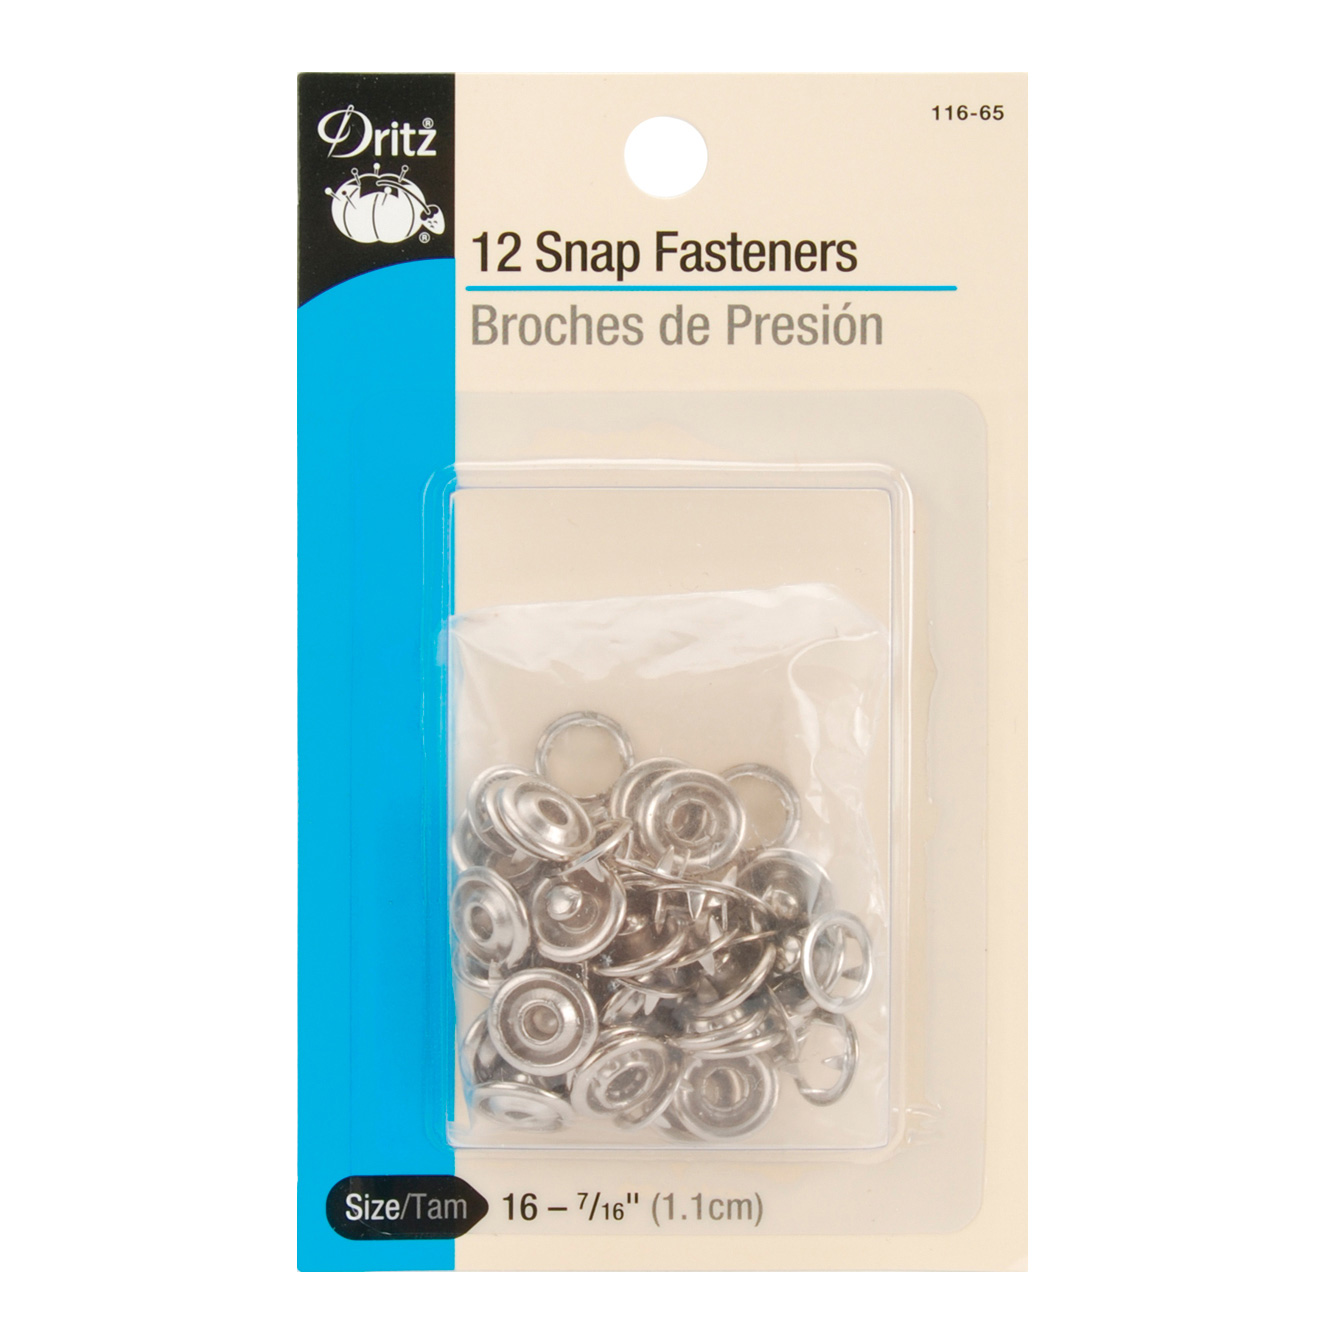 Dritz Gripper Snaps 7/16'' Nickel by Notions Marketing in USA